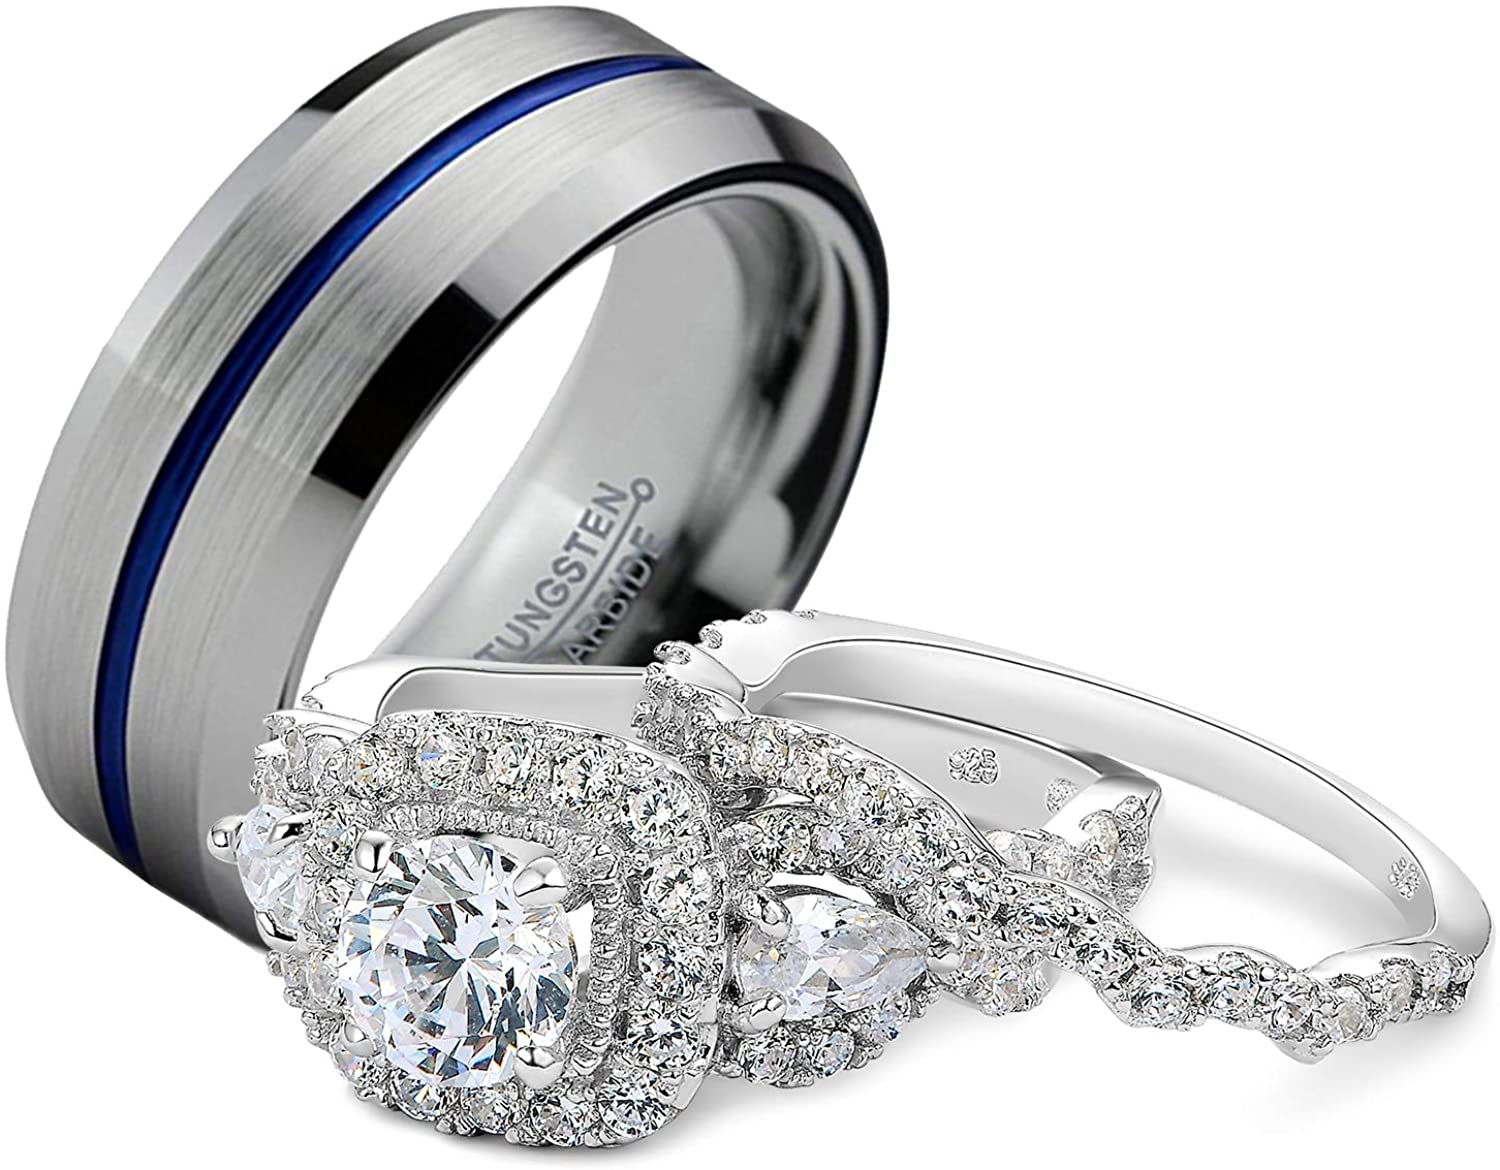 Newshe Wedding Rings Set for Him and Her Women Men Tungsten Bands Sterling Silver Blue Line Cz 5-13